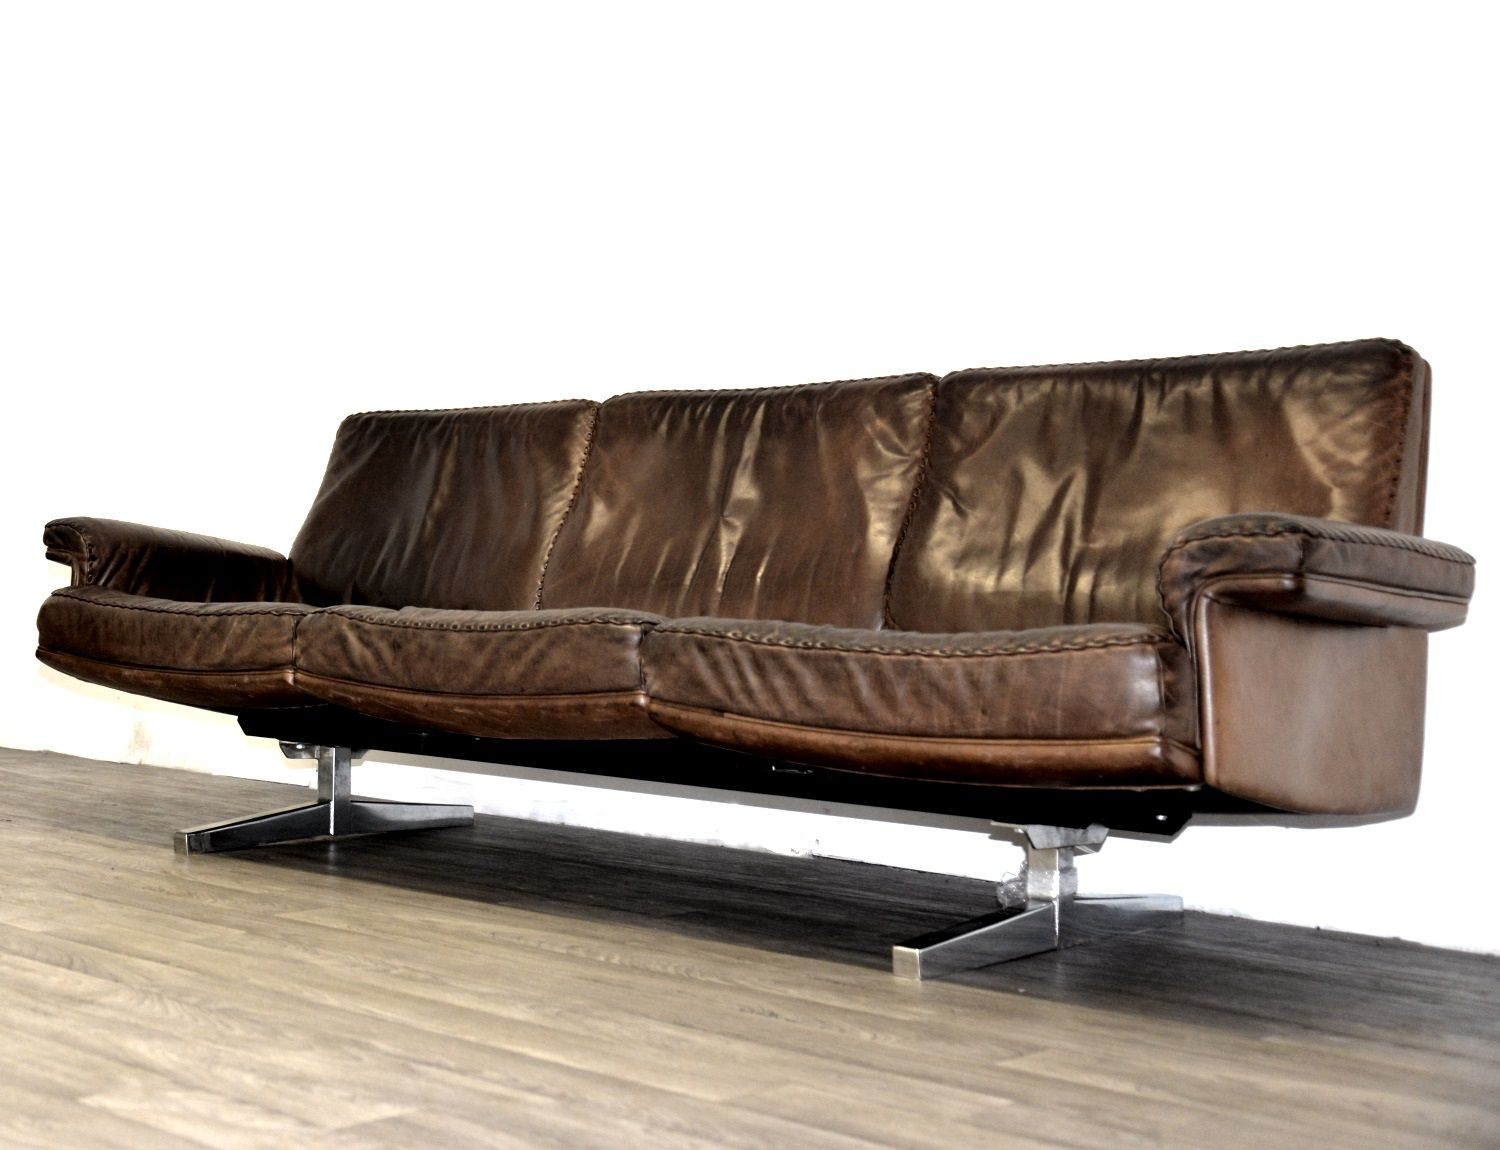 Vintage ds 35 3 seater leather sofa from de sede 1960s for Leather sofa 7 seater